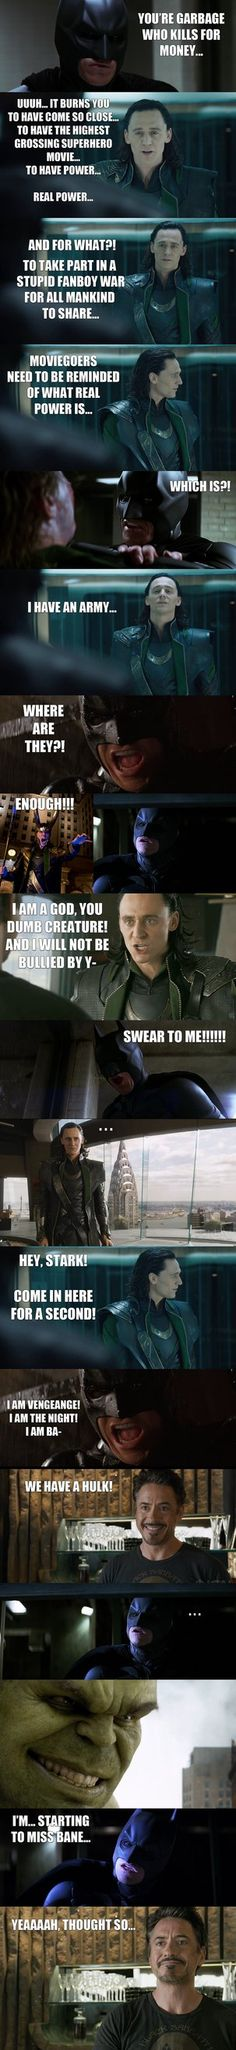 The Avengers - Loki vs The Dark Knight Part - this is pretty funny.